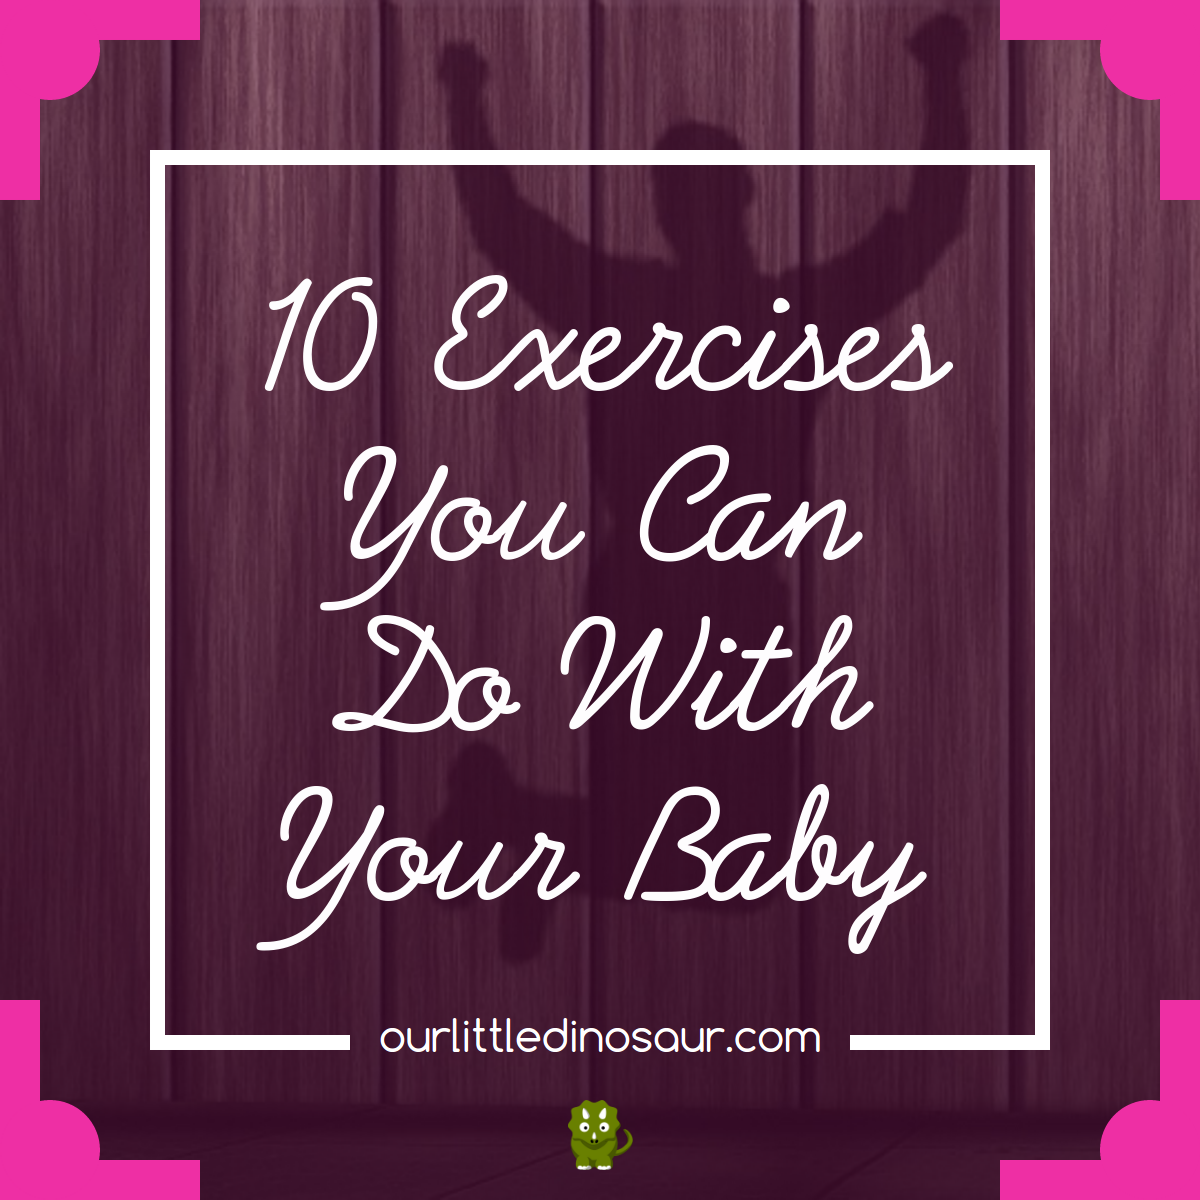 10 Exercises You Can Do WITH Your Baby